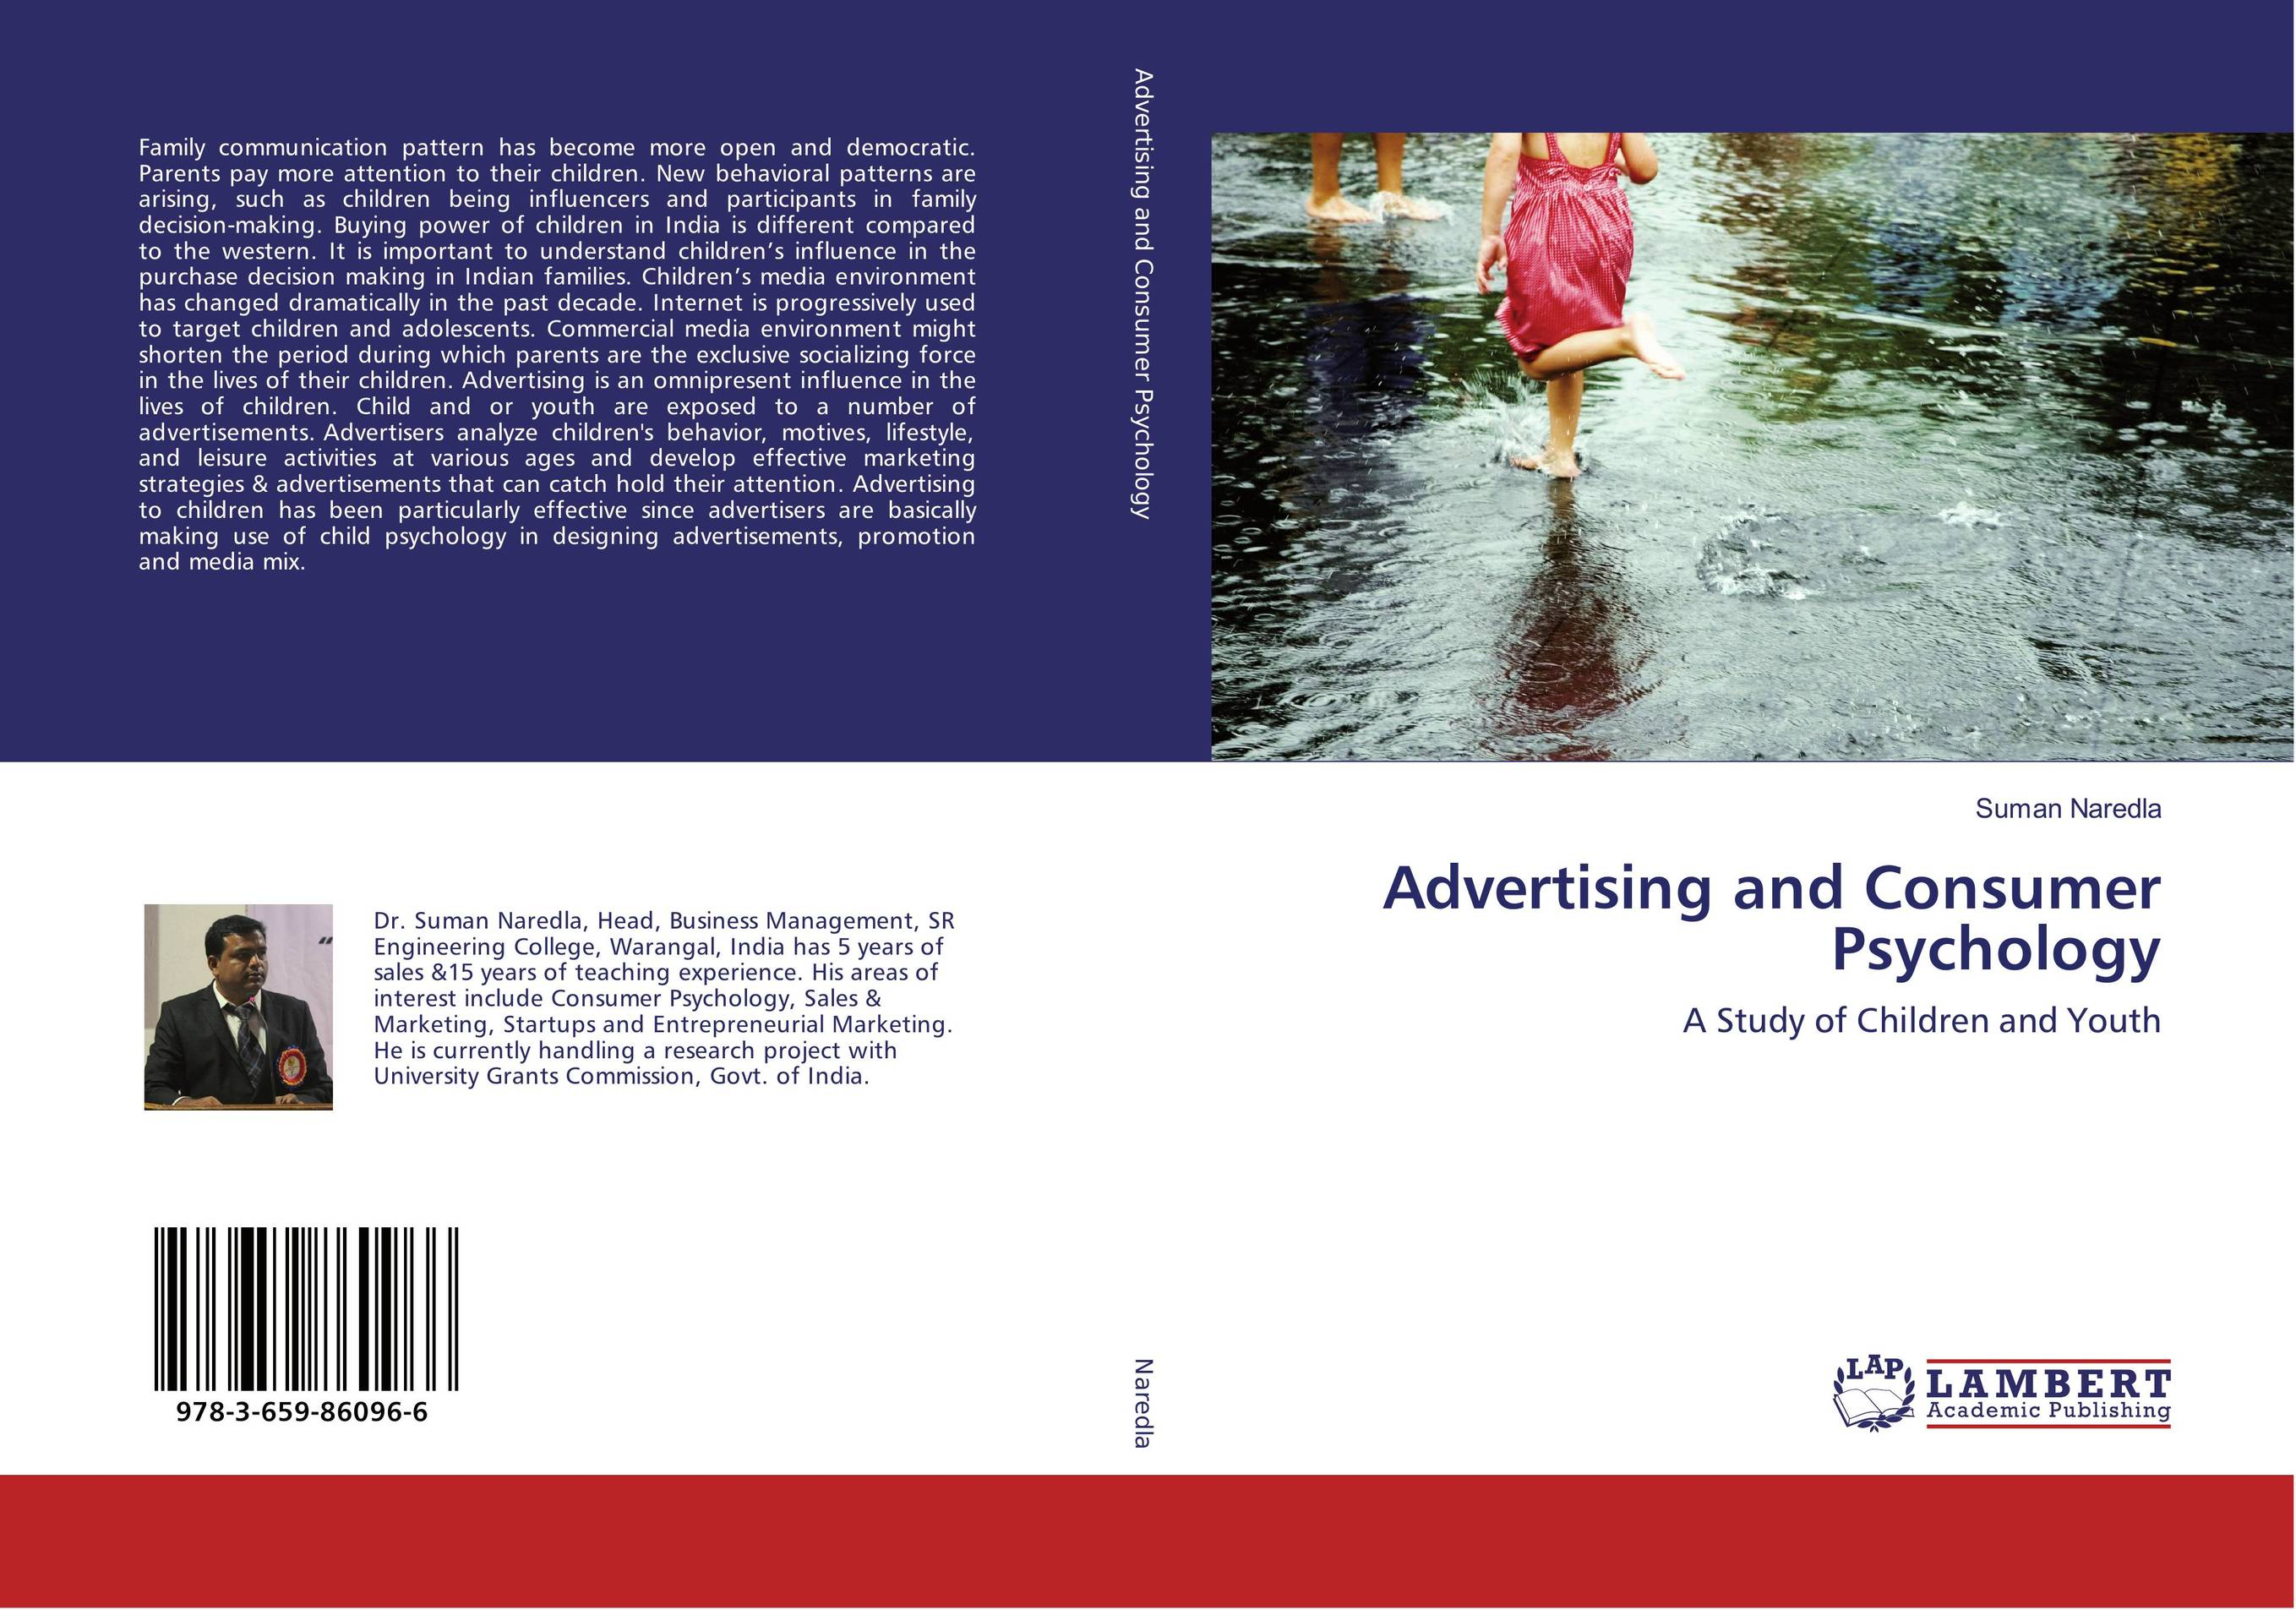 Advertising and Consumer Psychology